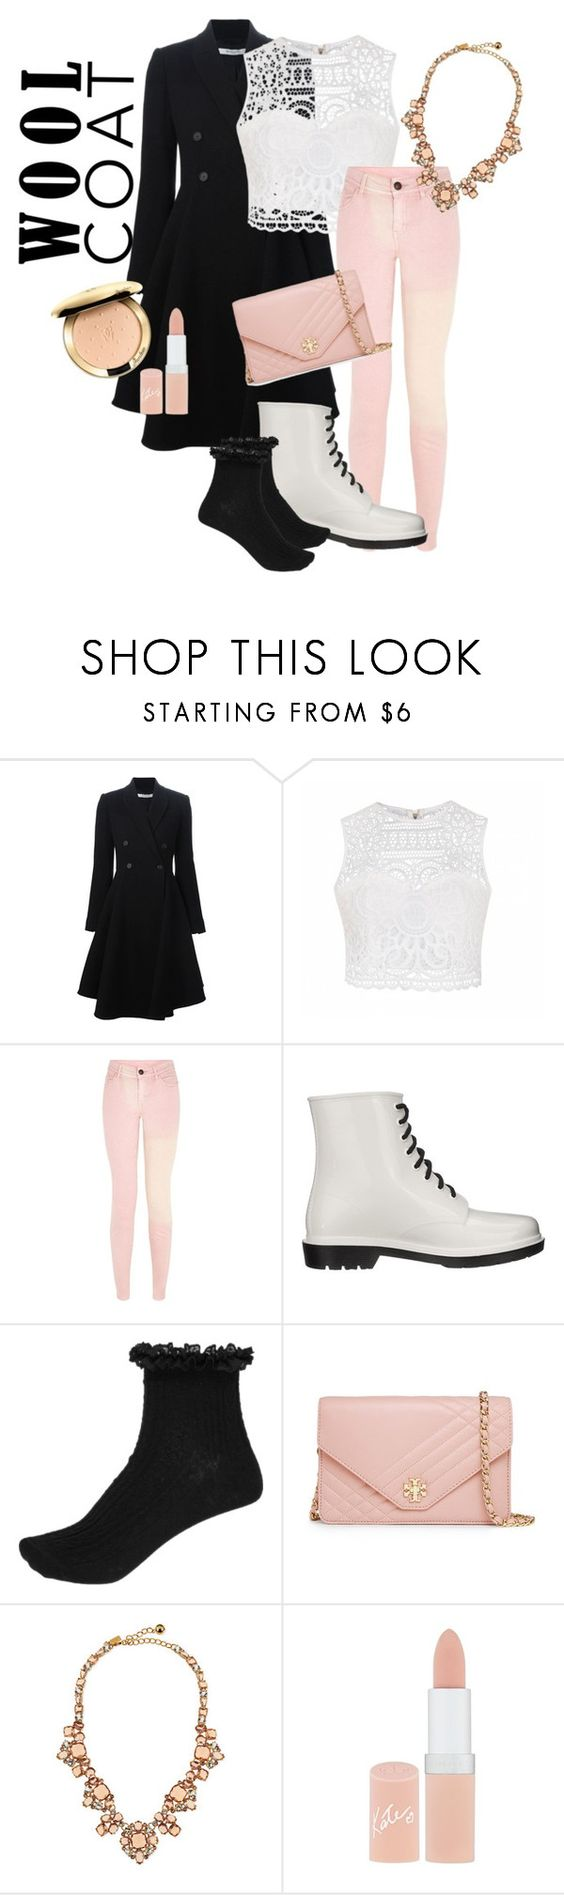 """Style With Wool Coat"" by lillian-cx ❤ liked on Polyvore featuring Givenchy, Ally Fashion, Circus By Sam Edelman, River Island, Tory Burch, Kate Spade and Rimmel"